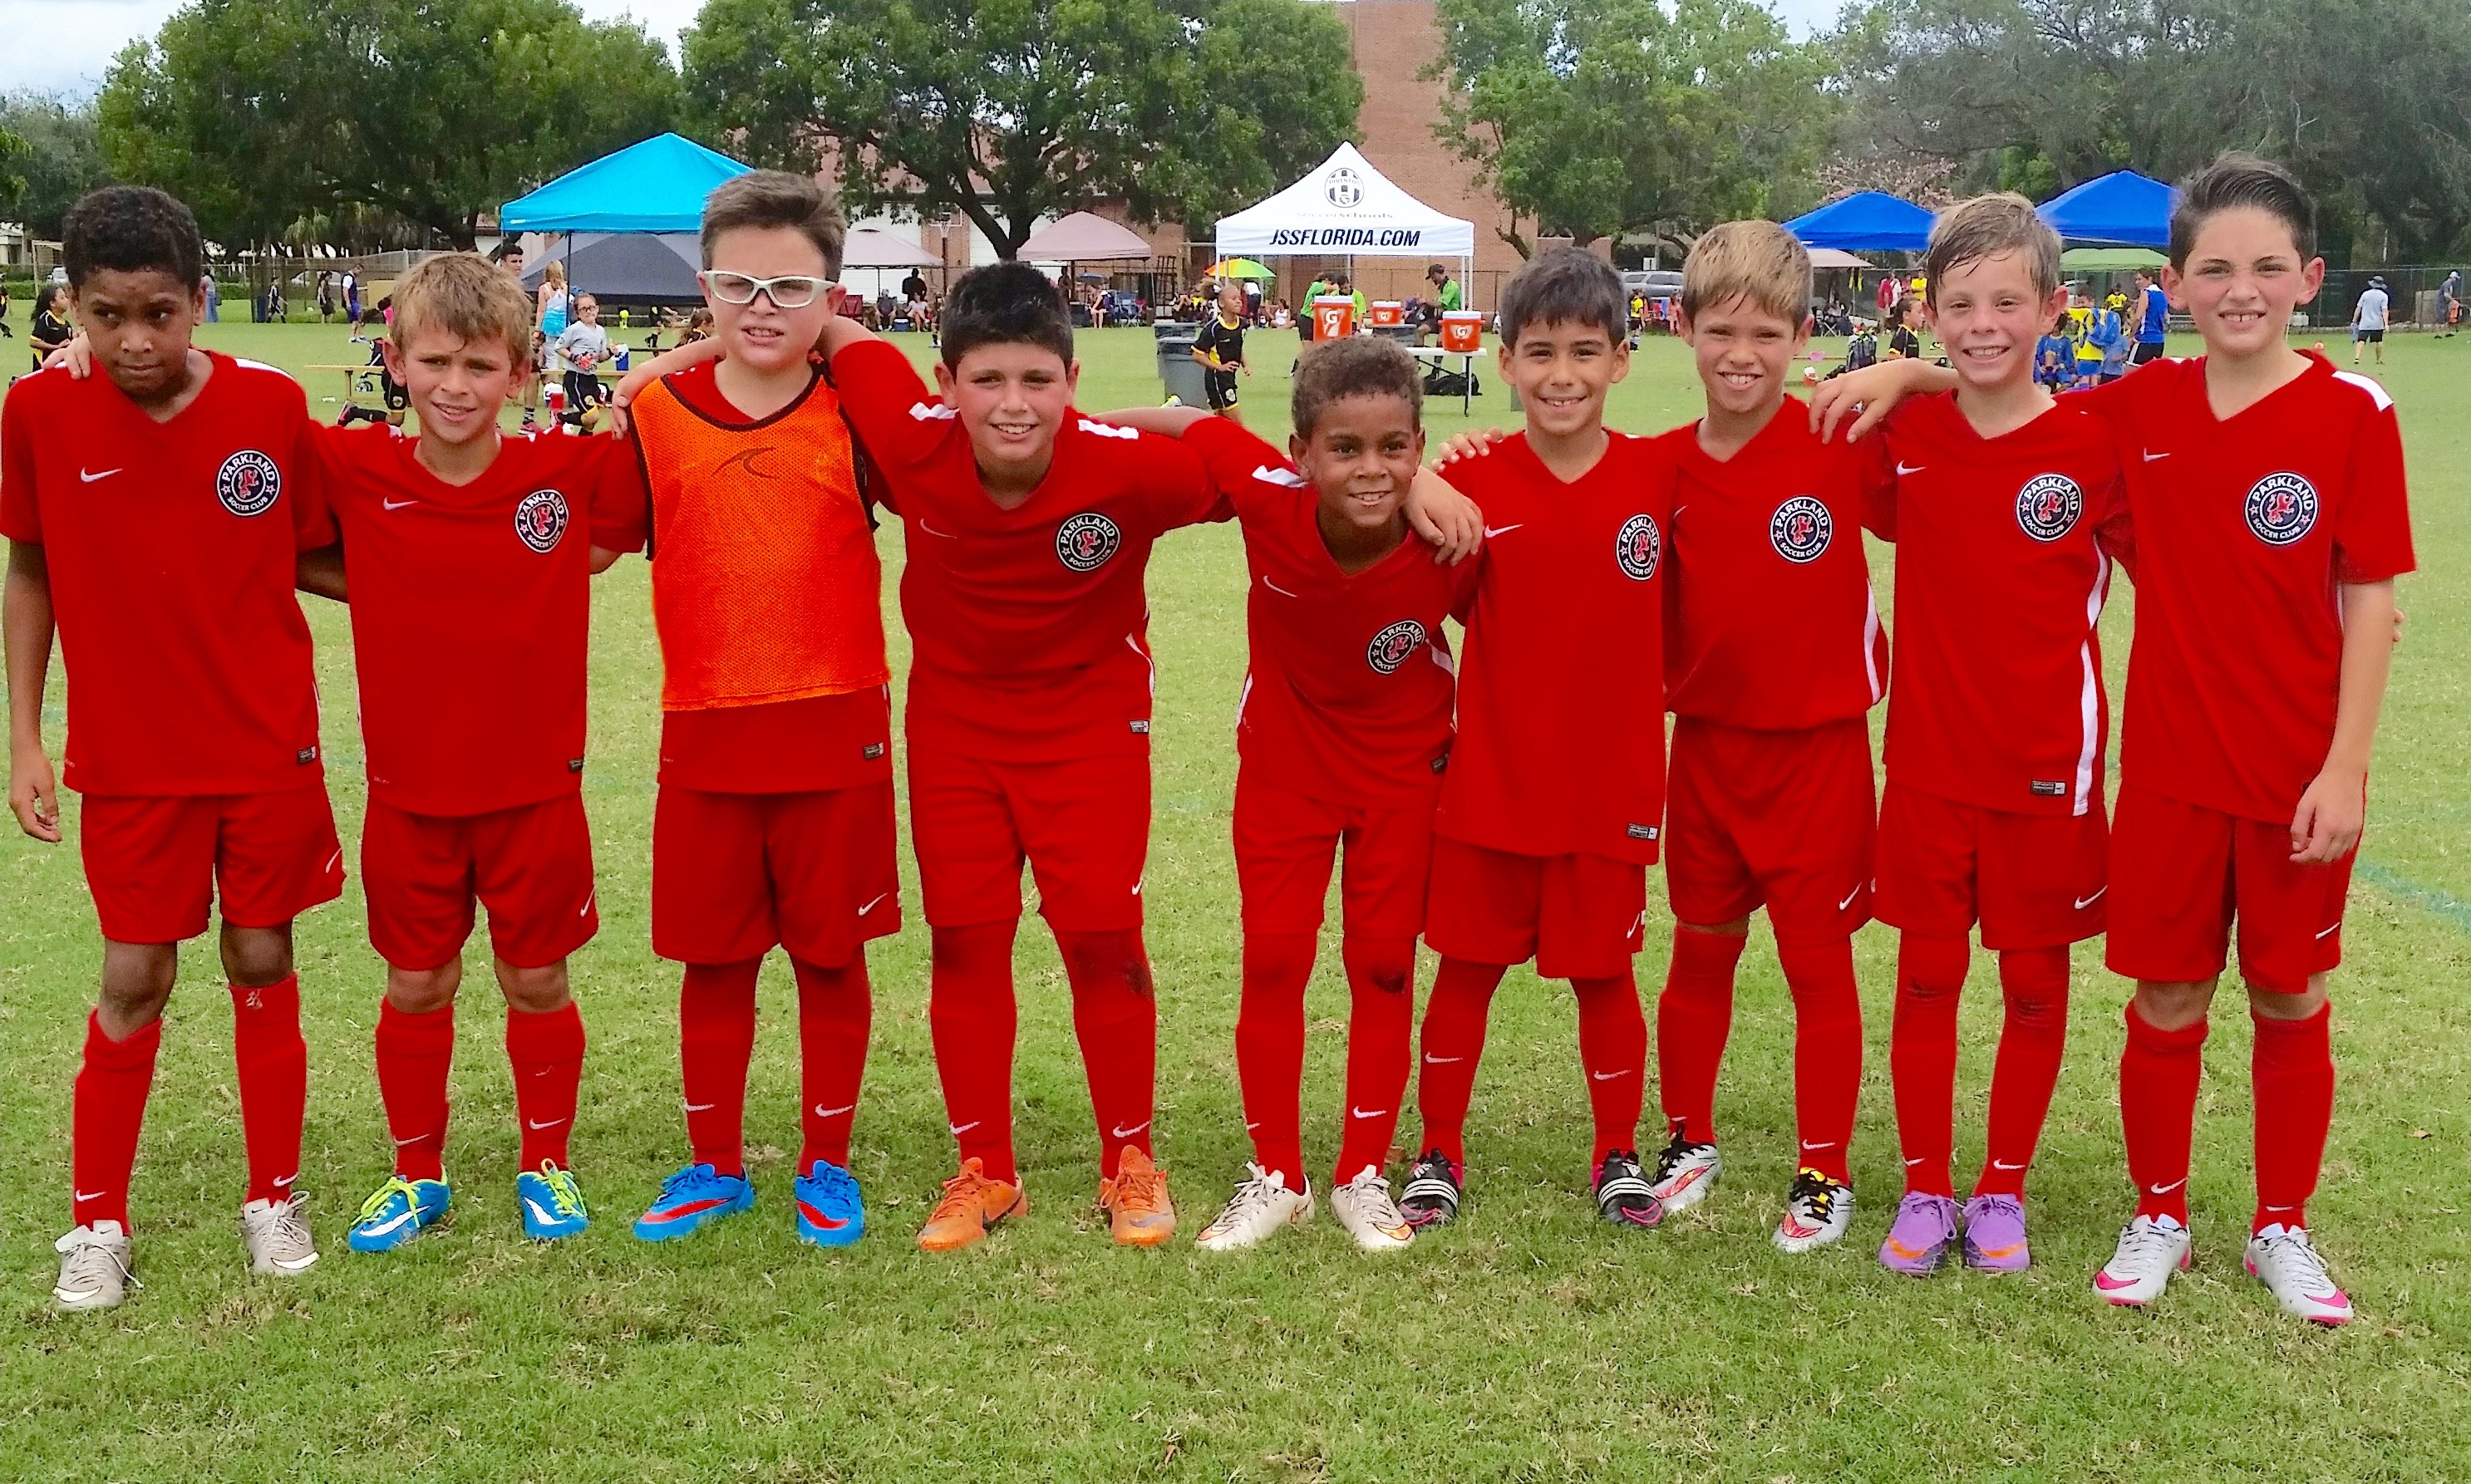 U10 Boys Red Team